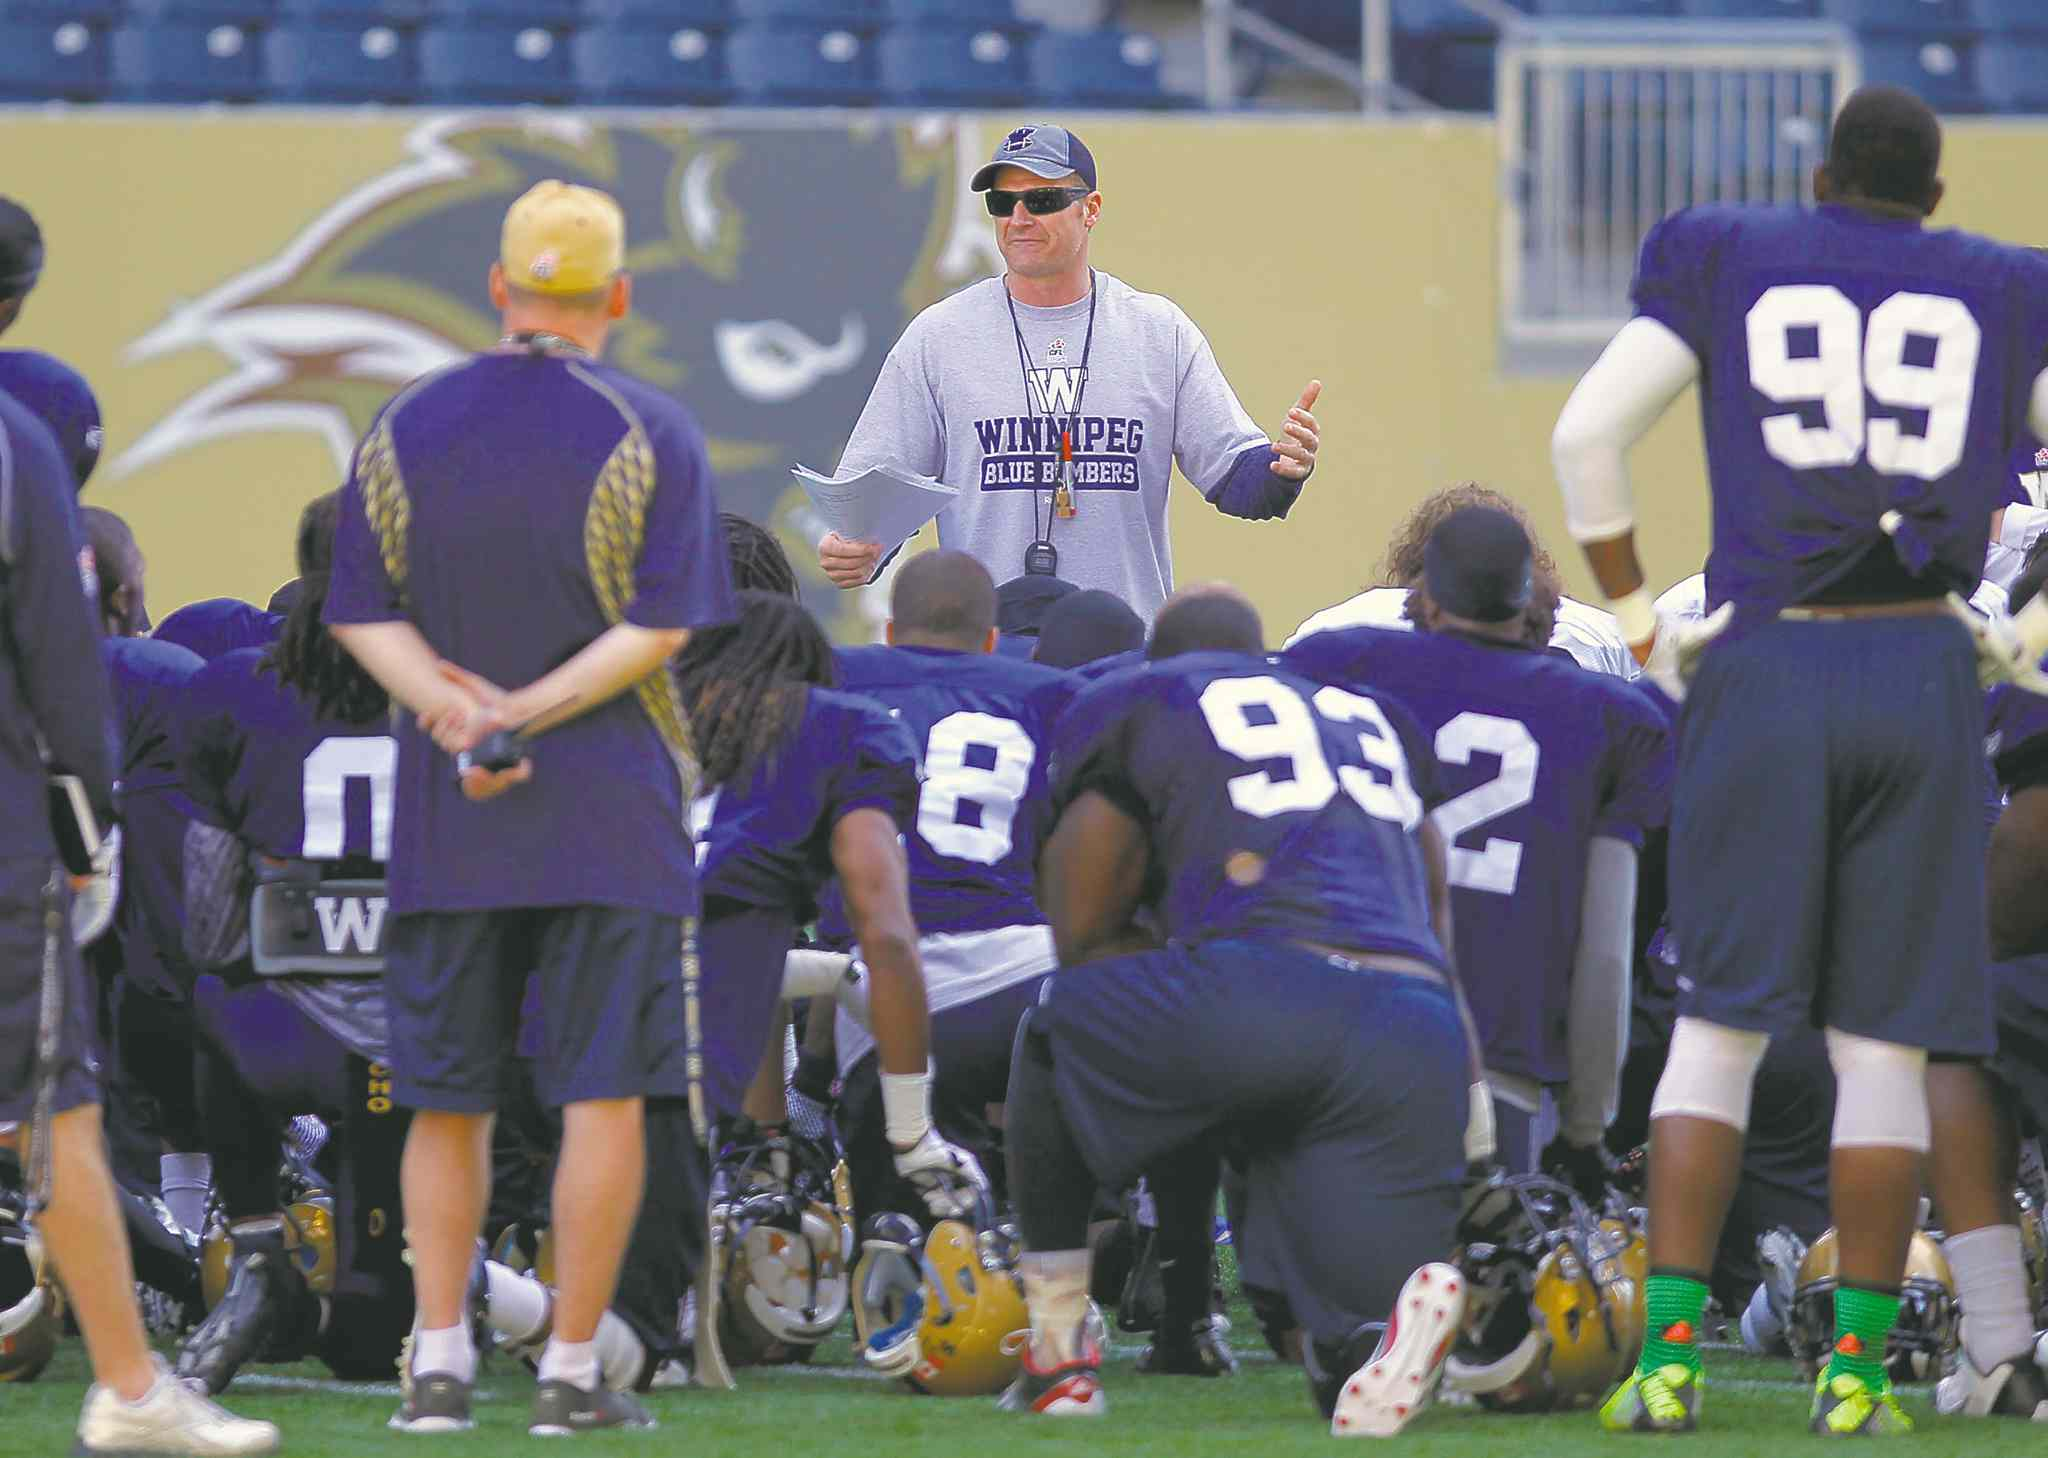 Winnipeg Blue Bombers coach Mike O'Shea talks to the team after the first half of today's practicee at the Investers Group Field. BORIS MINKEVICH / WINNIPEG FREE PRESS  June 3, 2014